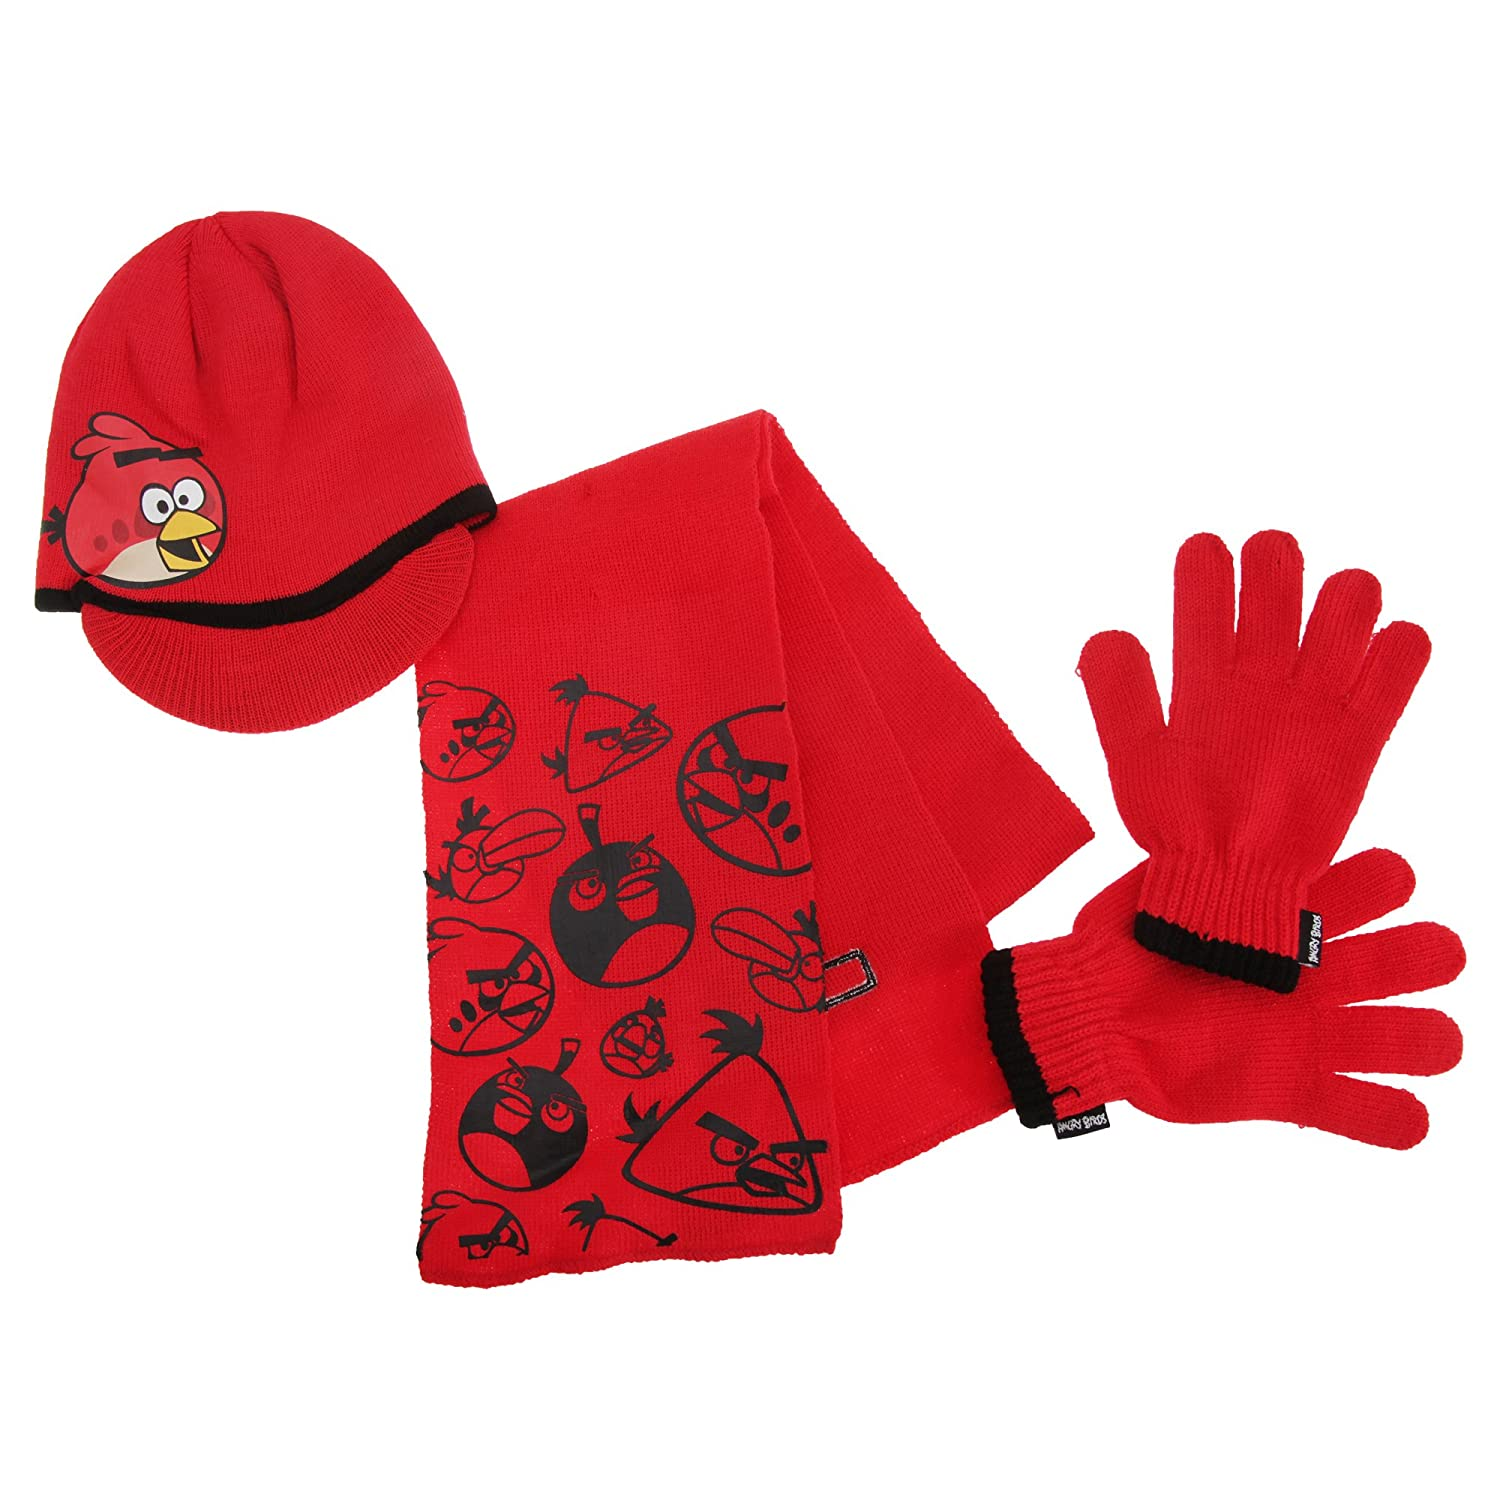 Angry Birds Childrens Boys Knitted Winter Hat, Gloves And Scarf Set (3-5 years) (Red) UTGL417_1